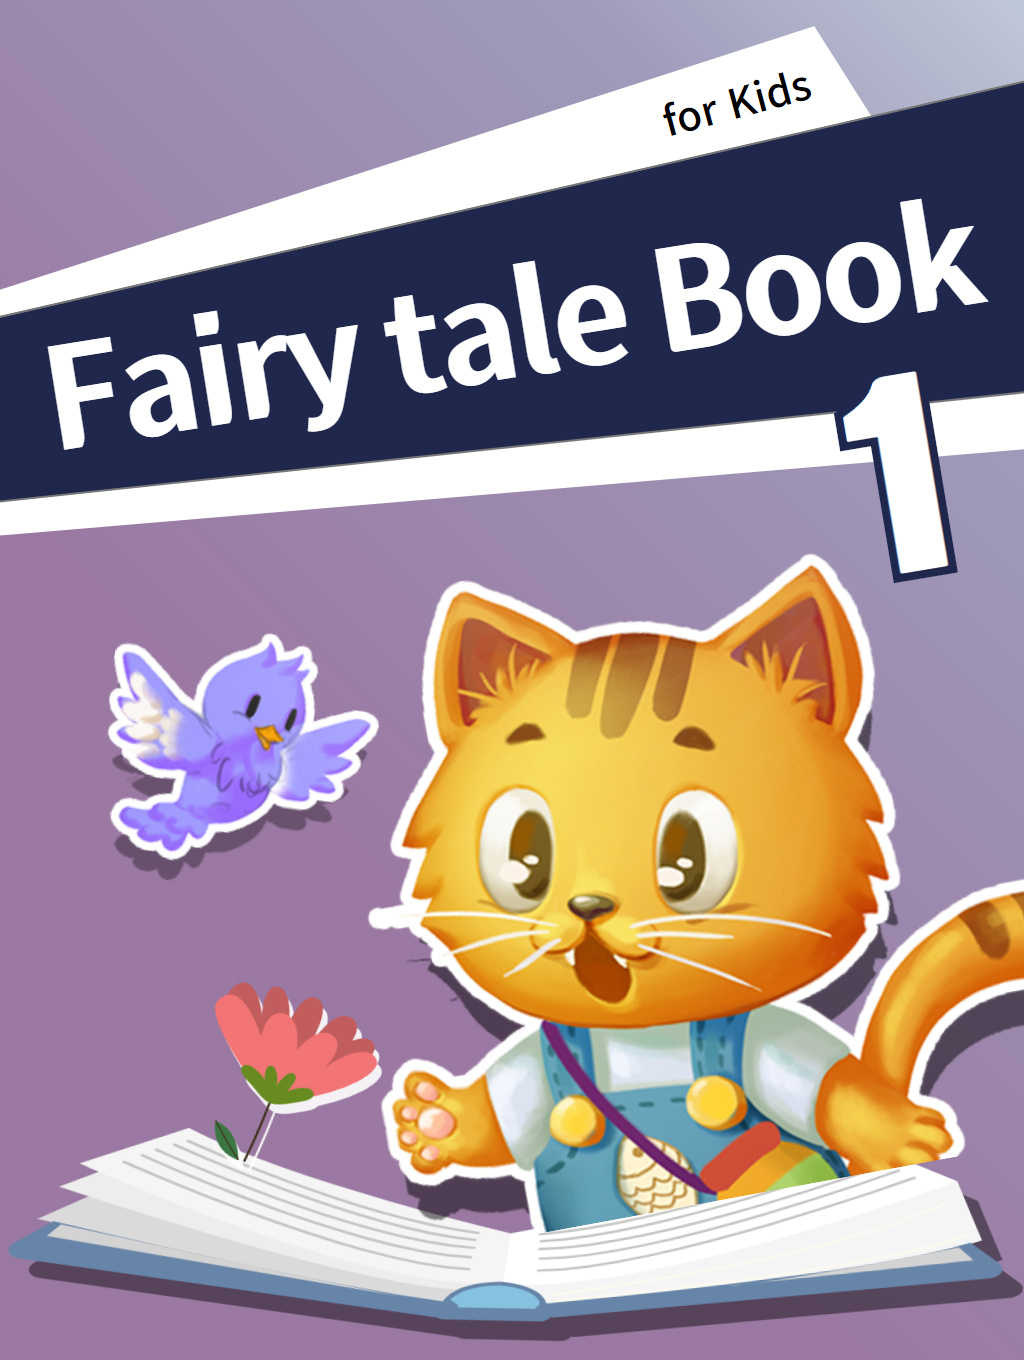 Fairy tale book for Kids 1